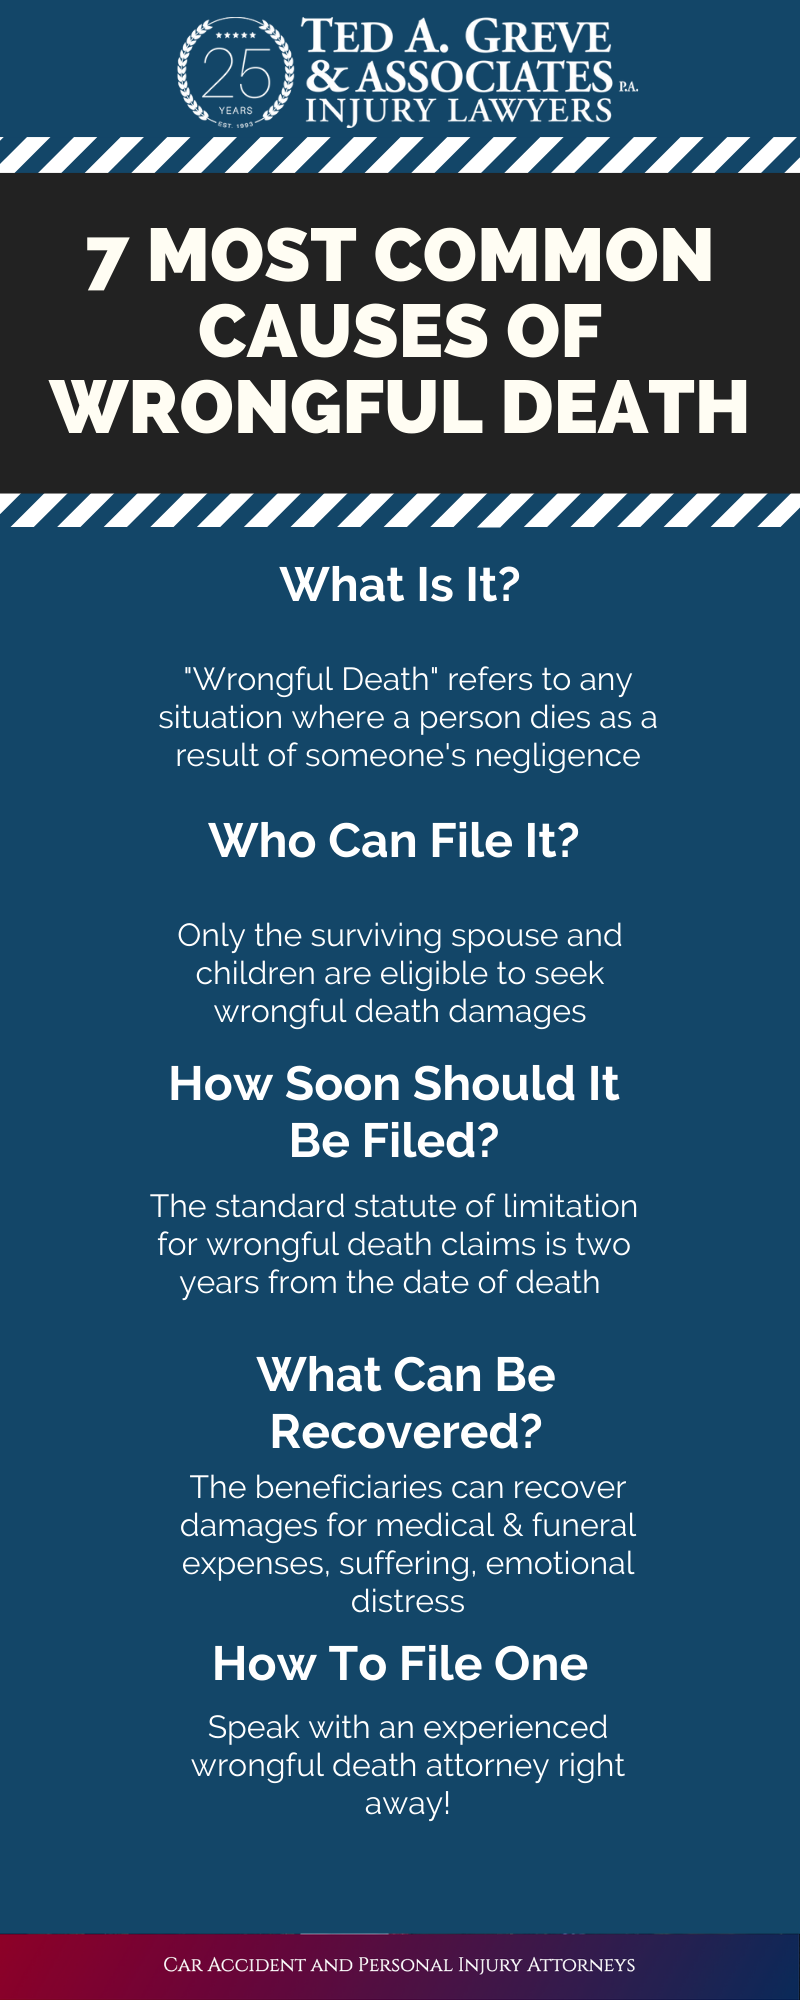 Ted Greve Atlanta Wrongful Death Infographic